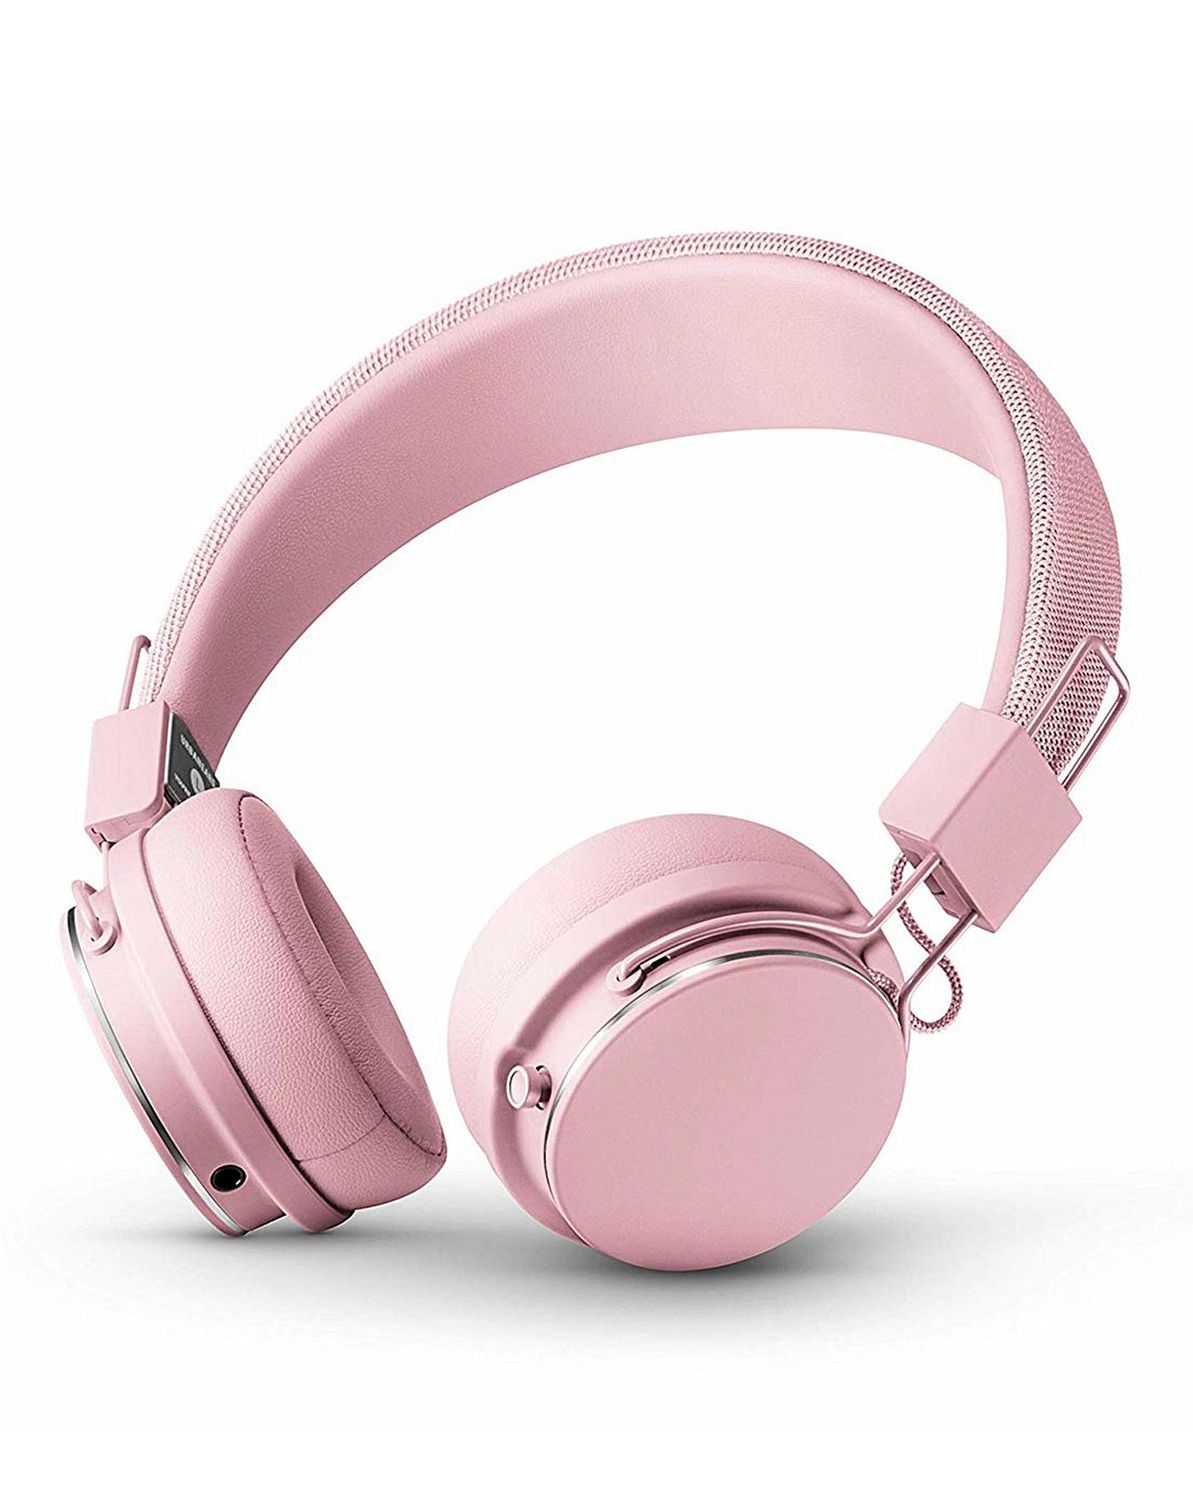 цена на Наушники Urbanears Plattan 2 Bluetooth Powder Pink